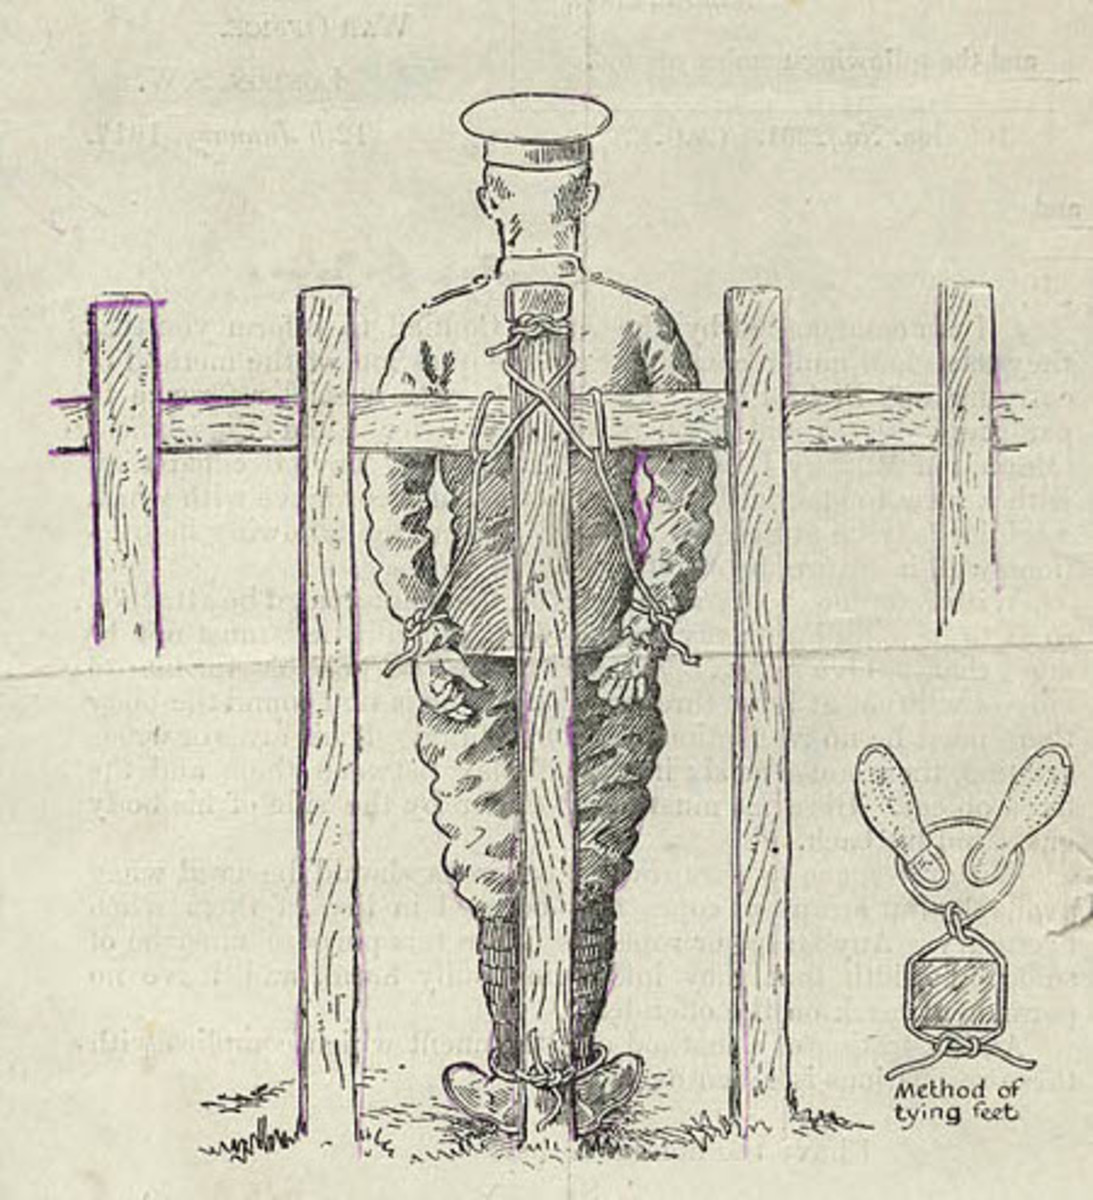 Field Punishment No. 1 replaced flogging in the British Army.  It was used for those who disobeyed orders on active service.  Some conscientious objectors sent to France were charged and given FP No. 1